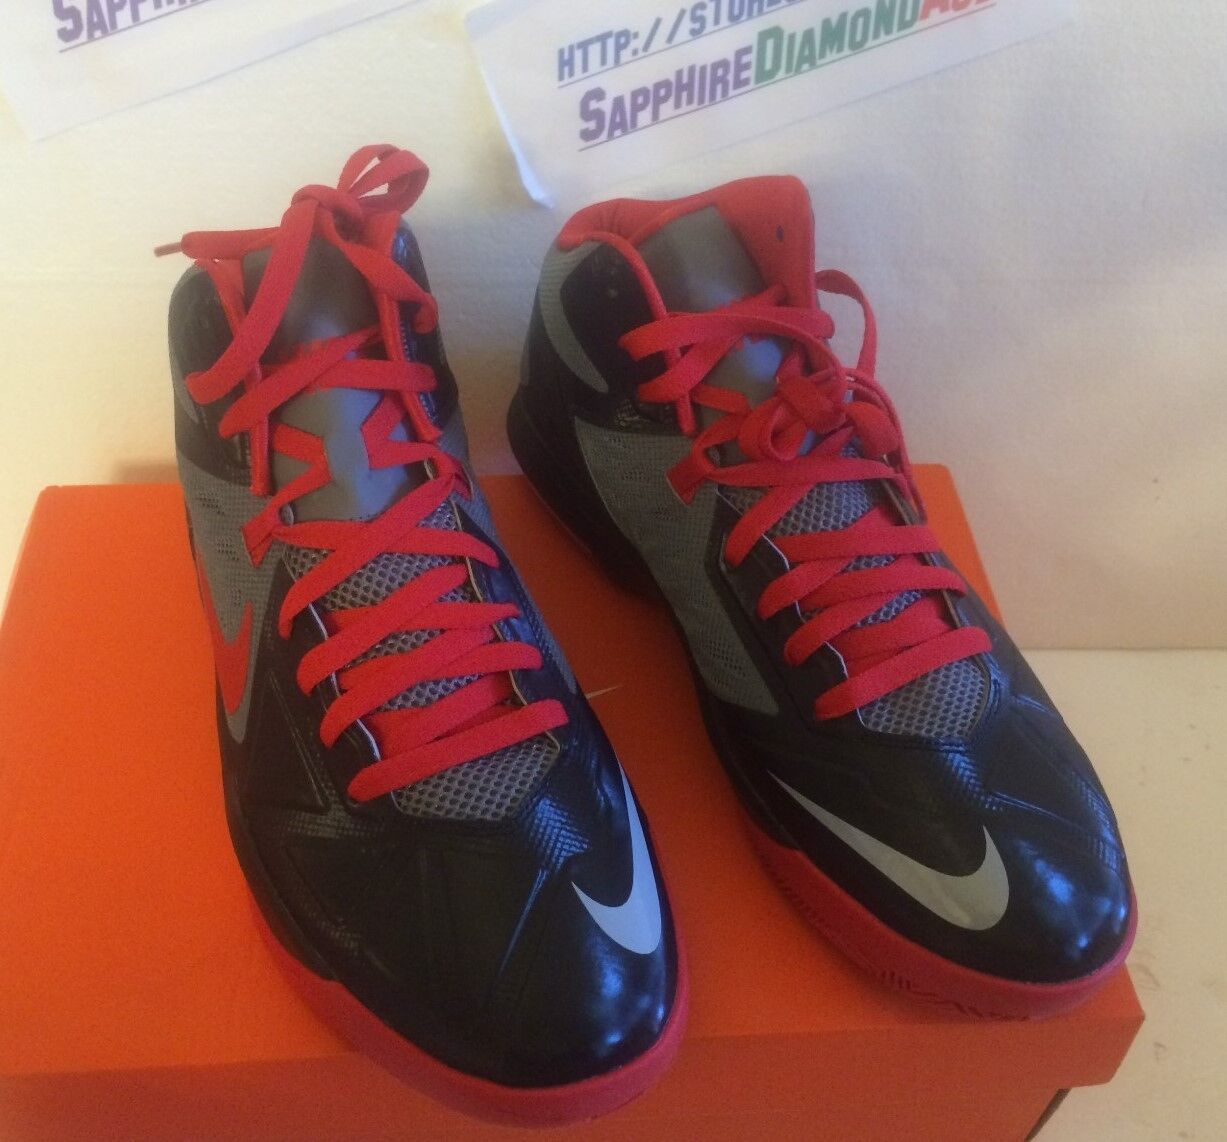 NIKE AIR MAX BODY U US Size 11 Basketball Shoes  model BRAND NEW